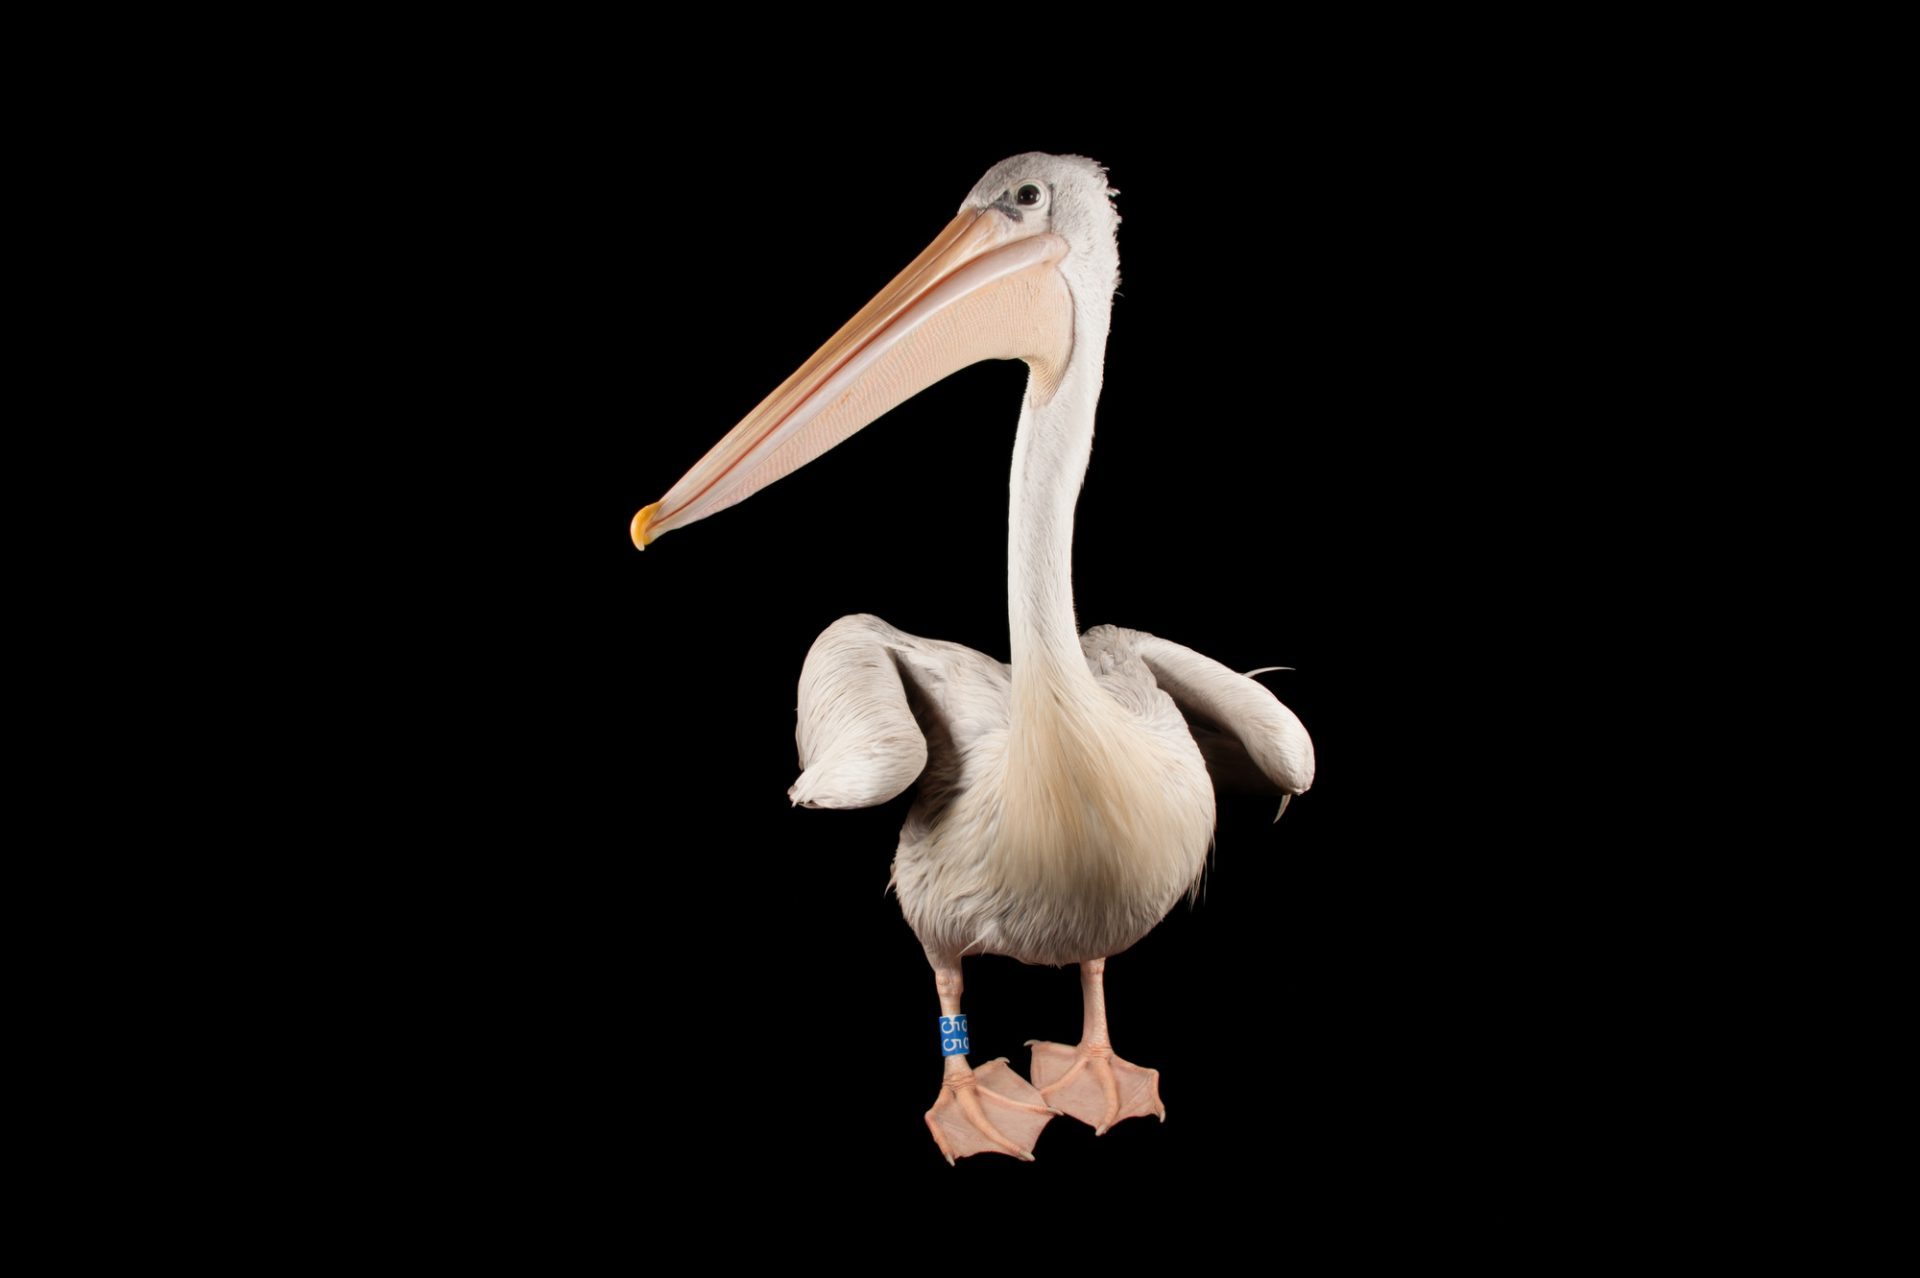 A pink-backed pelican (Pelecanus rufescens) at the Sedgwick County Zoo in Wichita, Kansas.